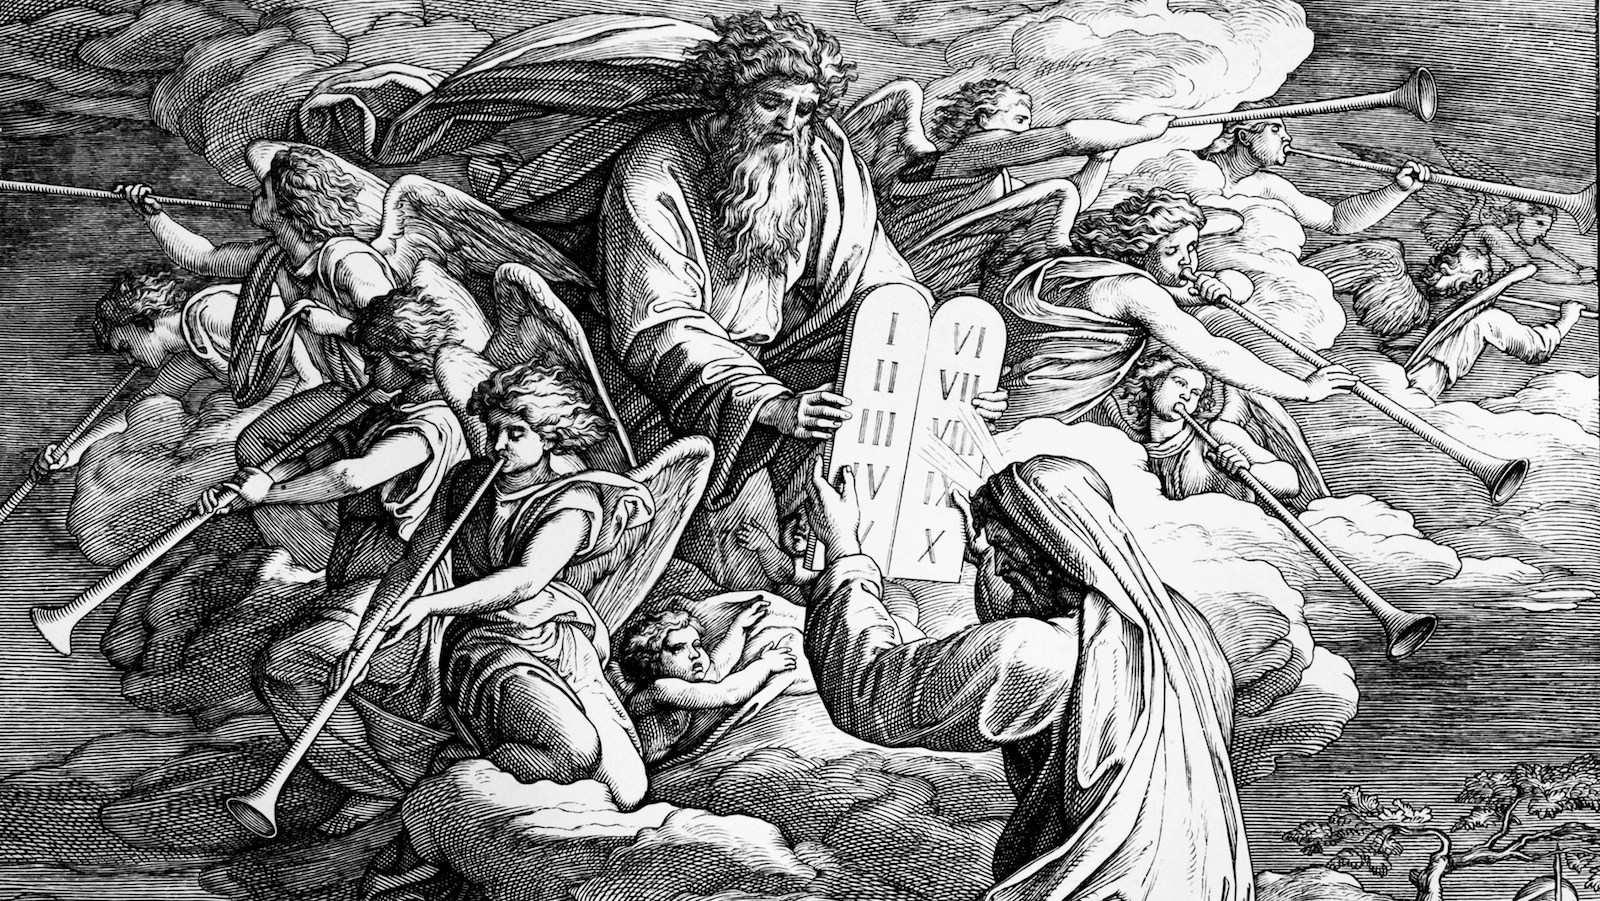 Whatever Happened To The Ten Commandments